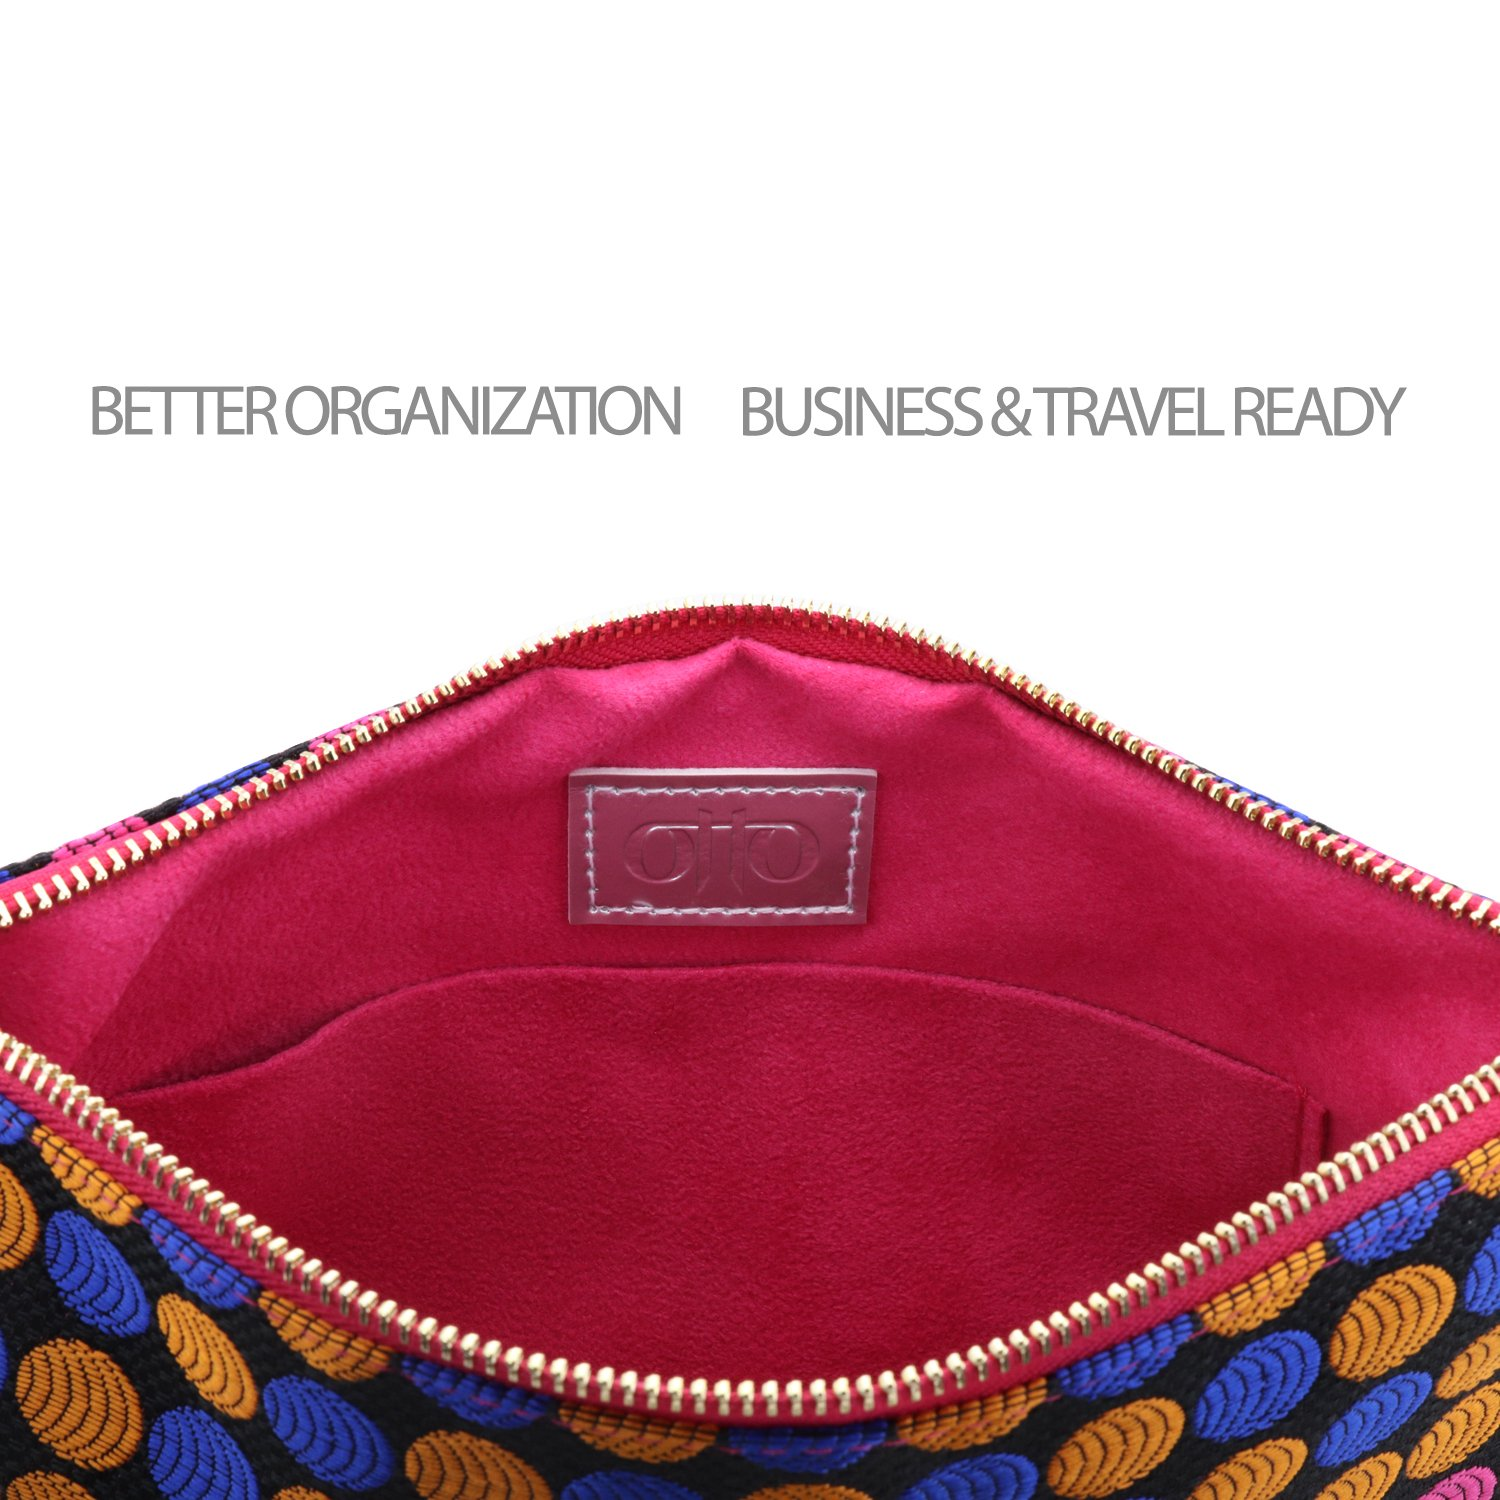 Otto Designer Women's Bohemian Clutch Purse - Multiple Slots Money, Cards, Smartphone - Ultra Slim (Dots) by OTTO Leather (Image #4)